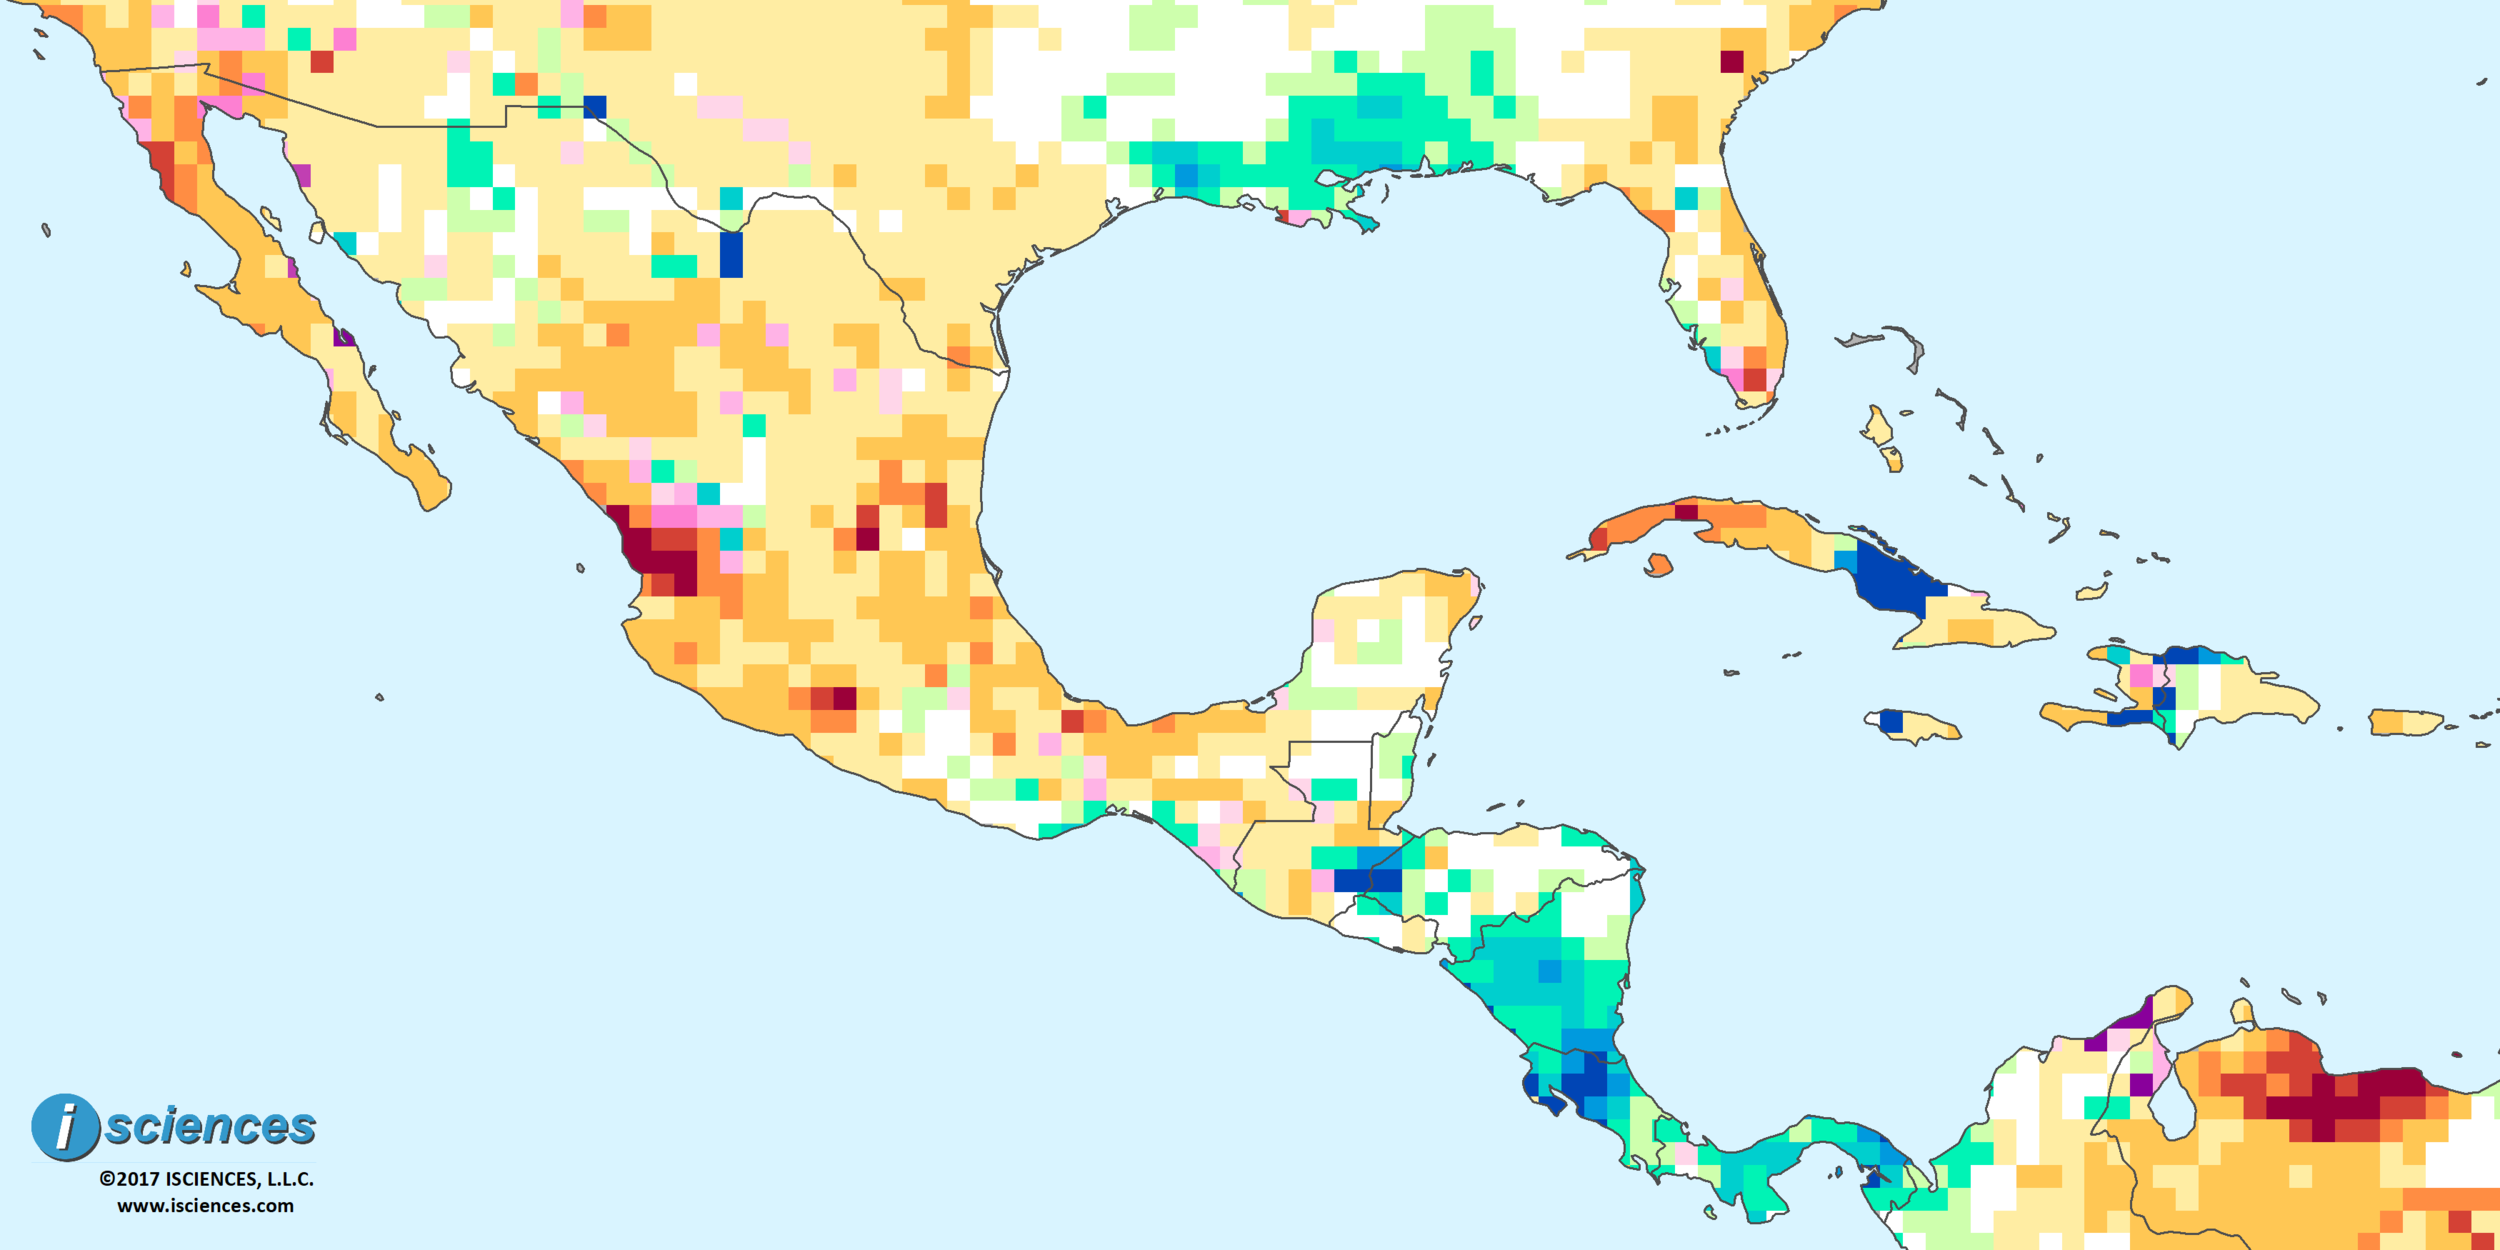 Mexico Central America the Caribbean Severe water deficits